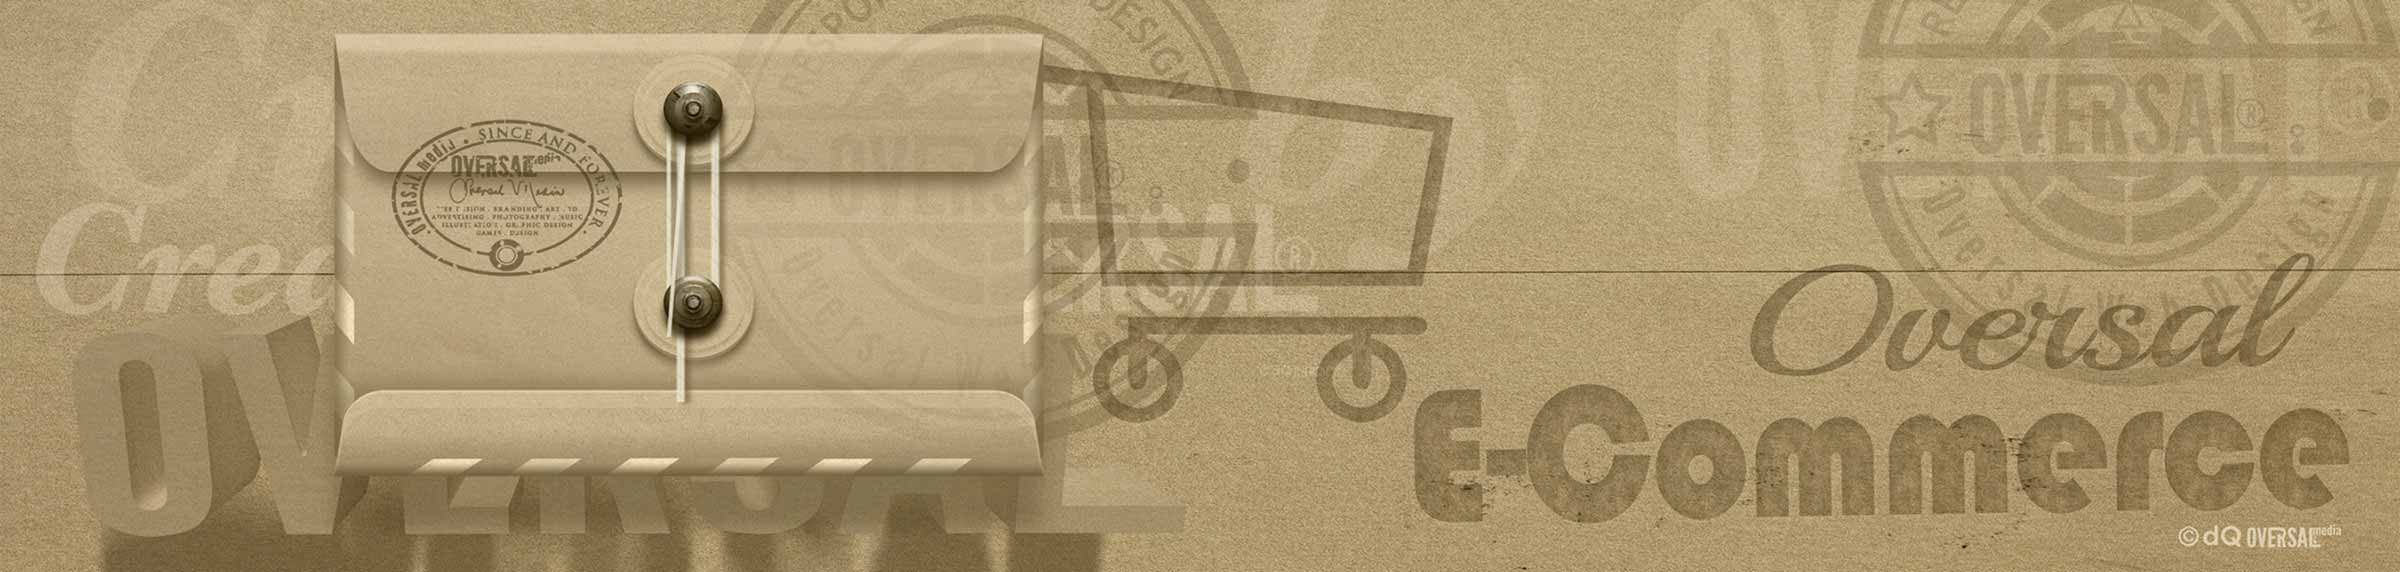 Graphic of a paper envelope with shopping cart Oversal